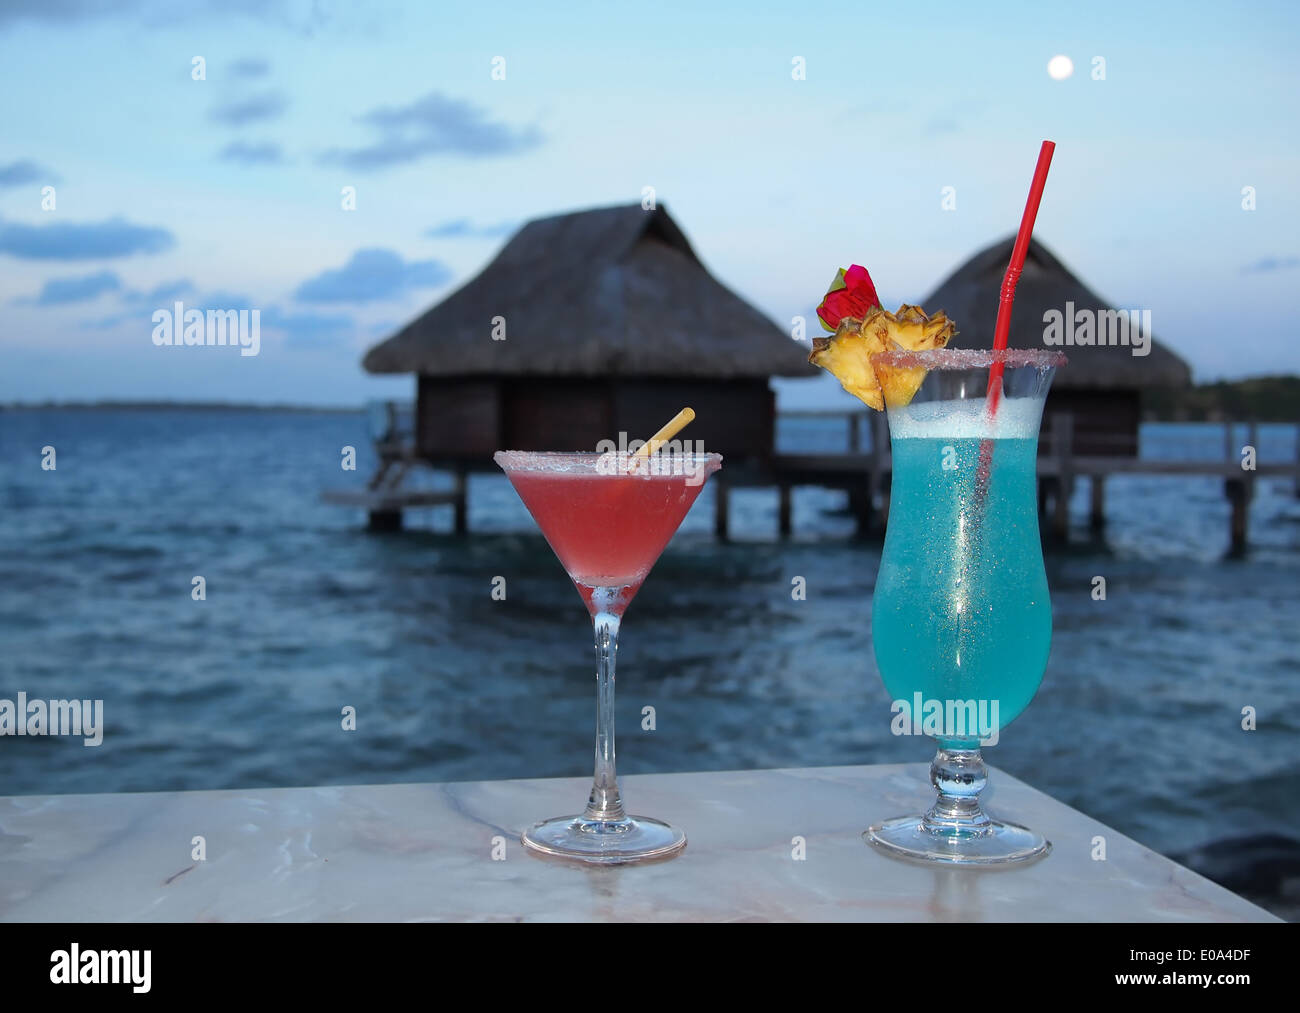 Honeymoon. Two cocktails on a table at dusk with in the background thatched overwater bungalows on a tropical island. - Stock Image